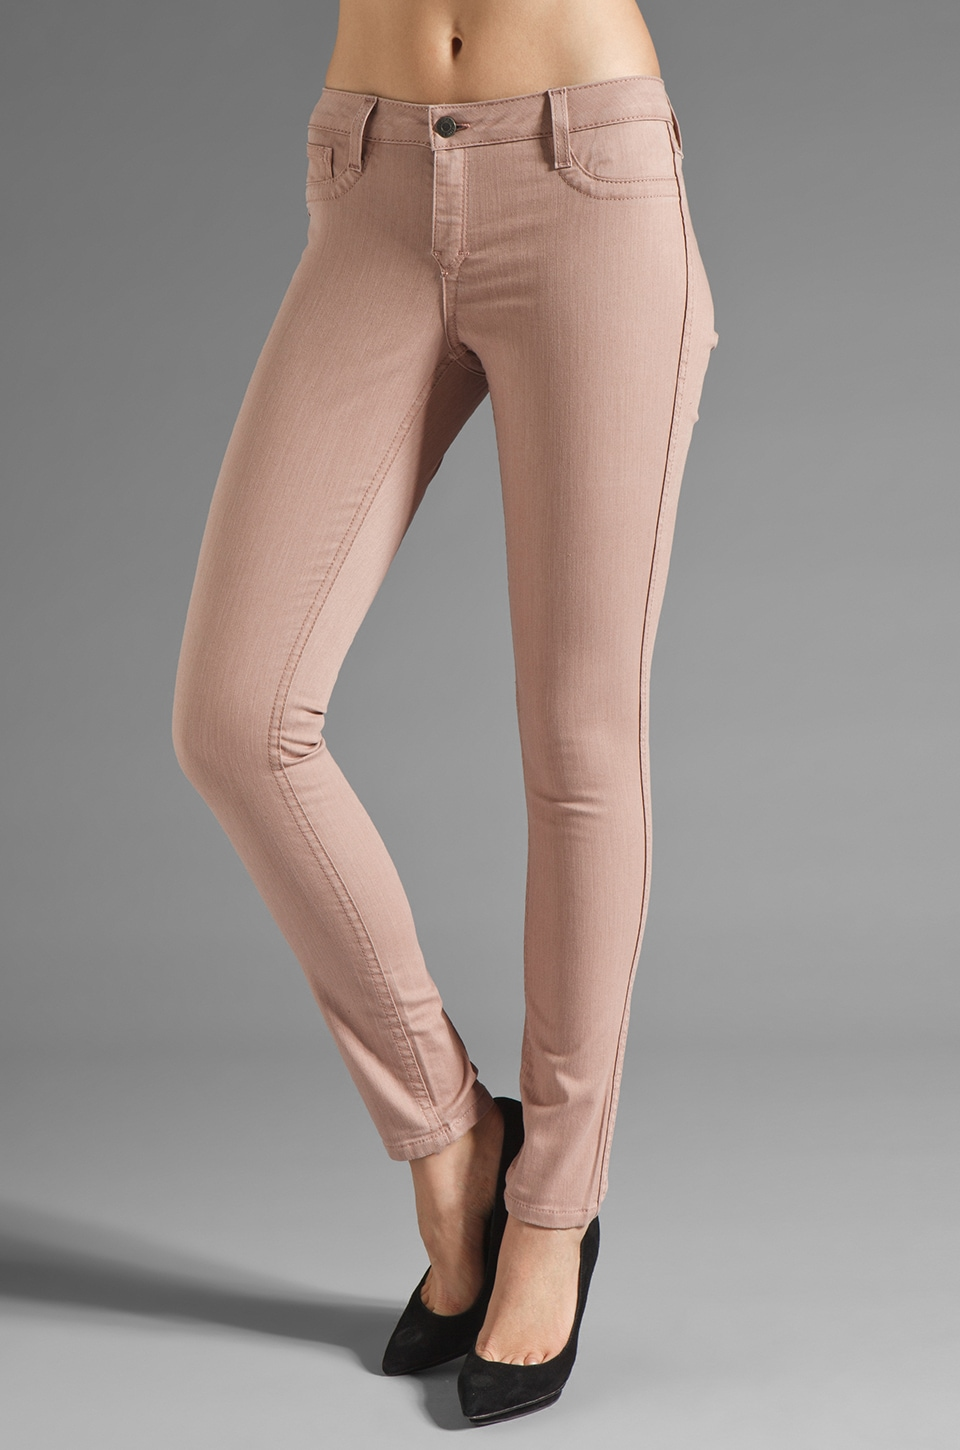 BLEULAB Reversible Matrix Detour Legging in Tea Rose/Viridian